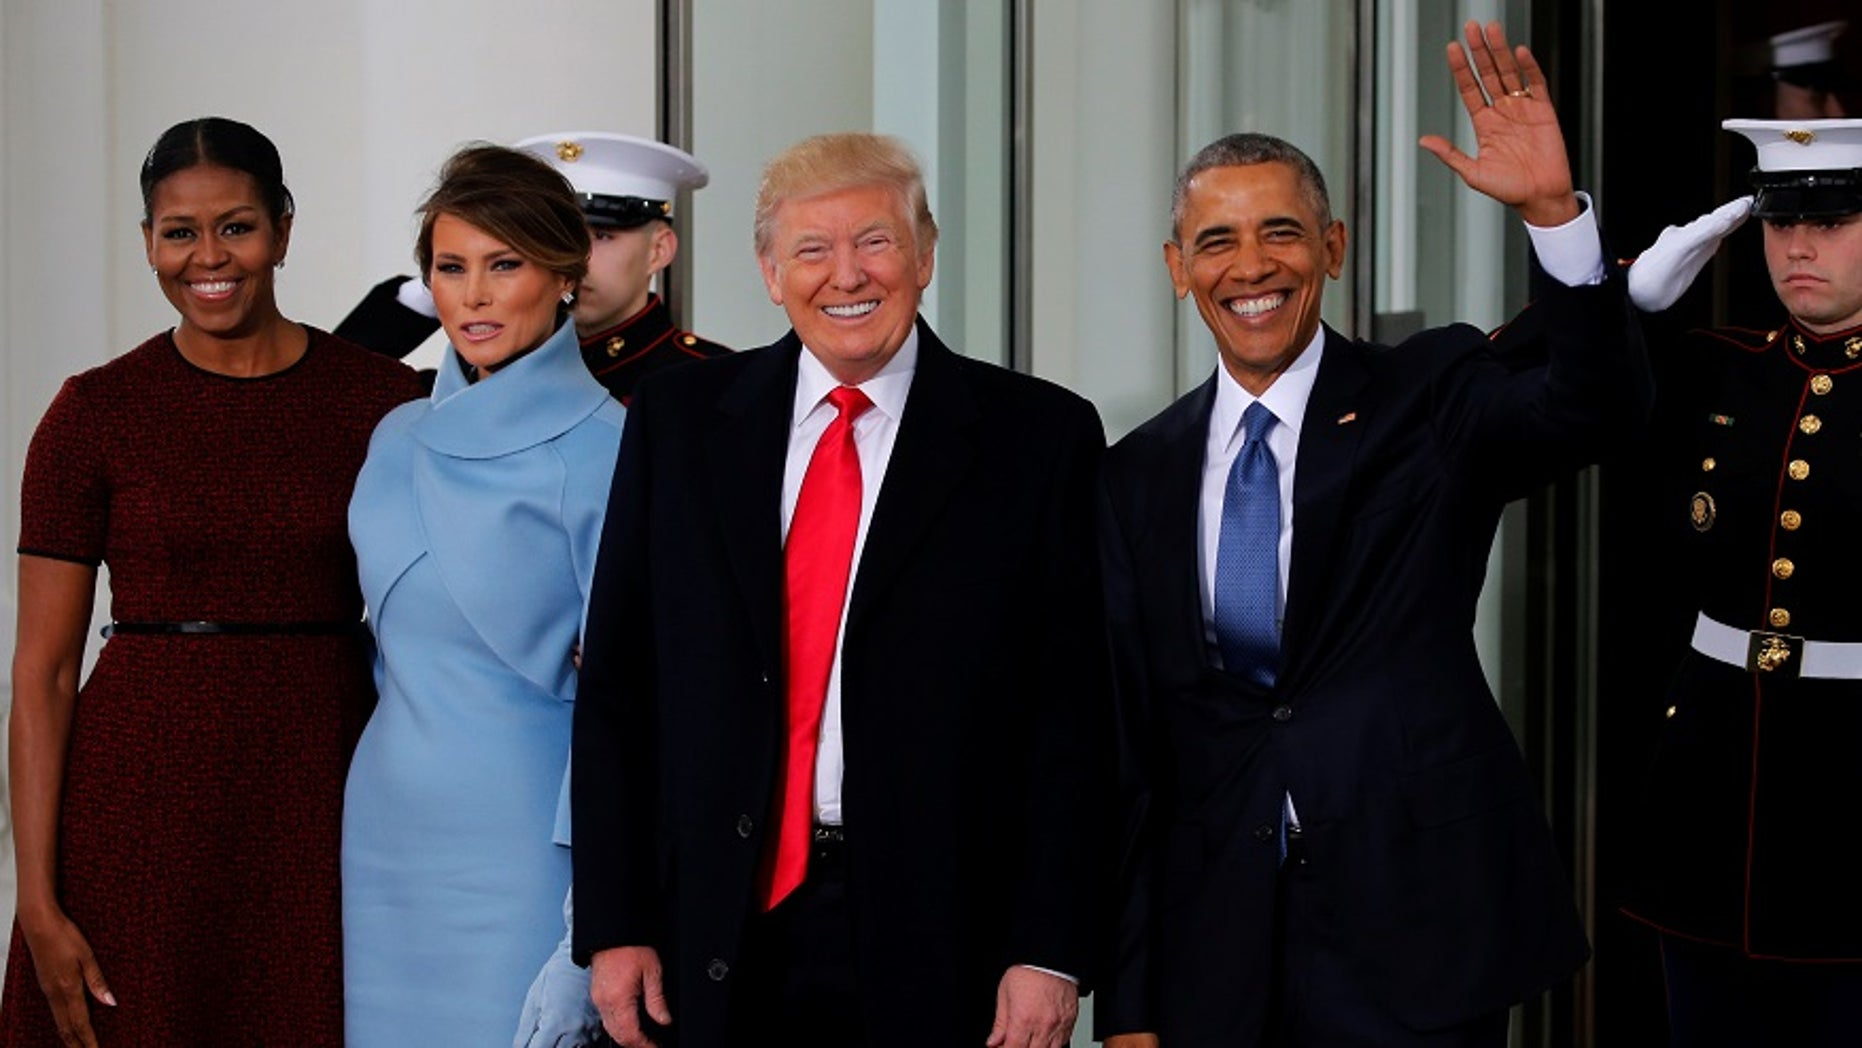 Michelle Obama revealed what Melania Trump gave to her as a parting gift on Inauguration Day.